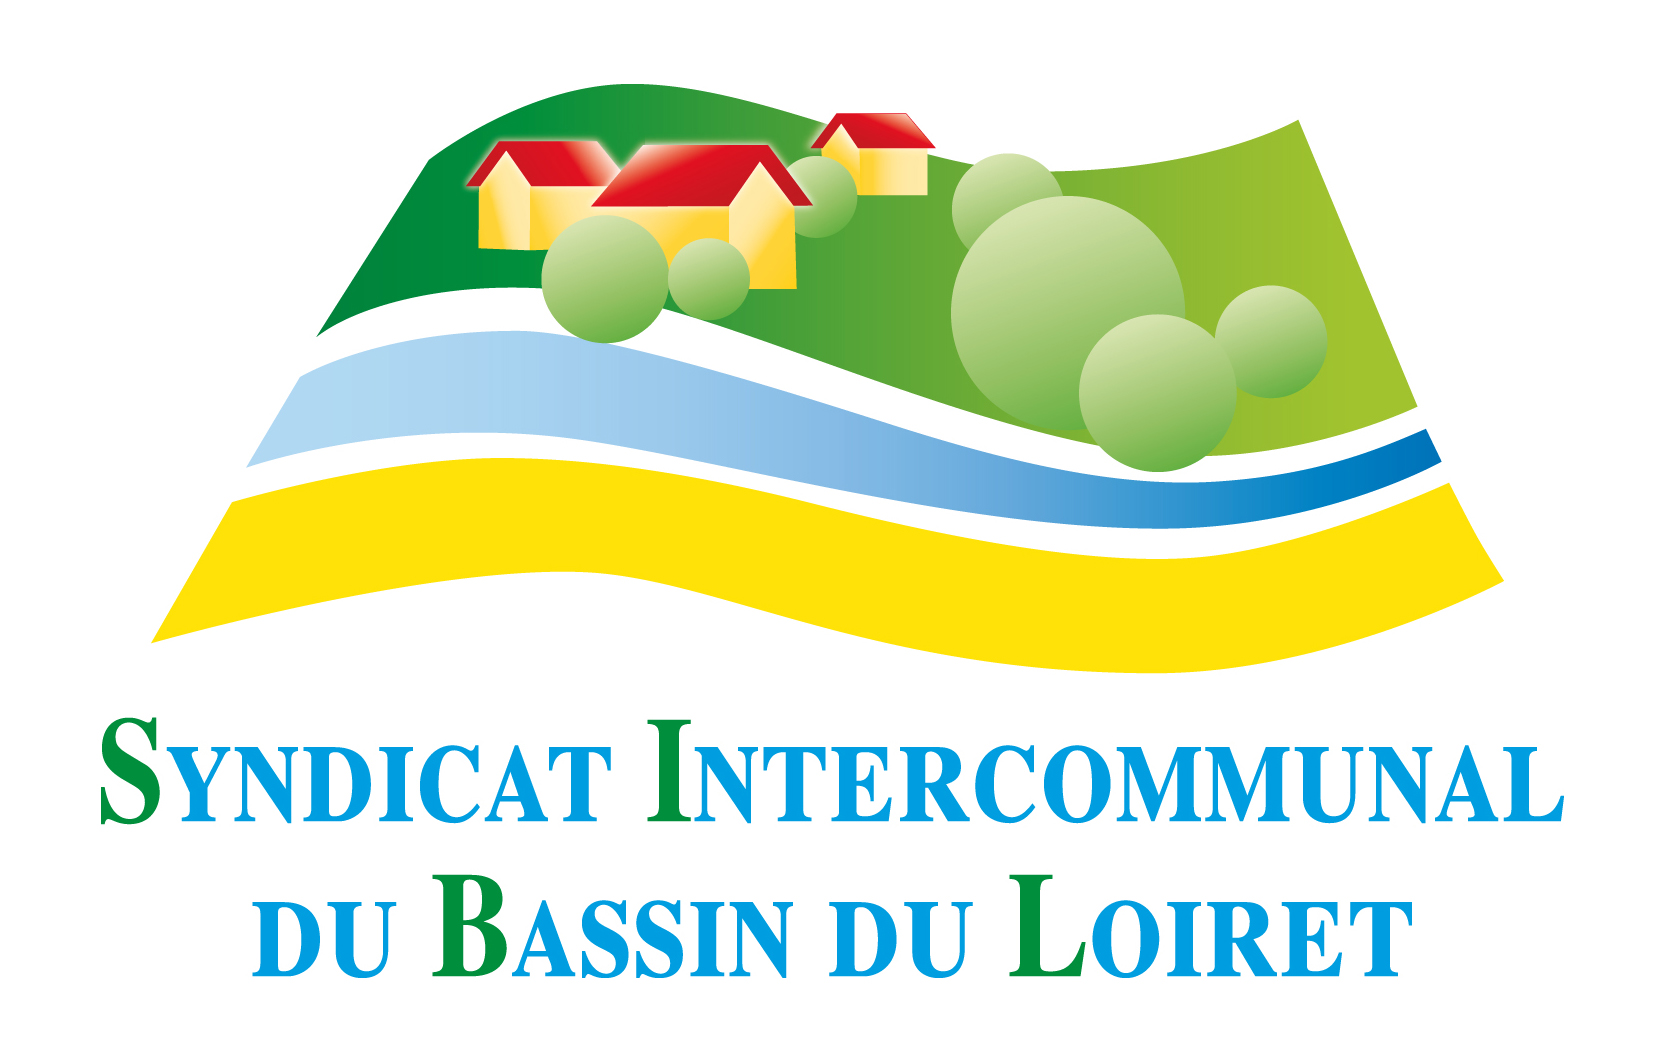 Syndicat Intercommunal du Bassin du Loiret